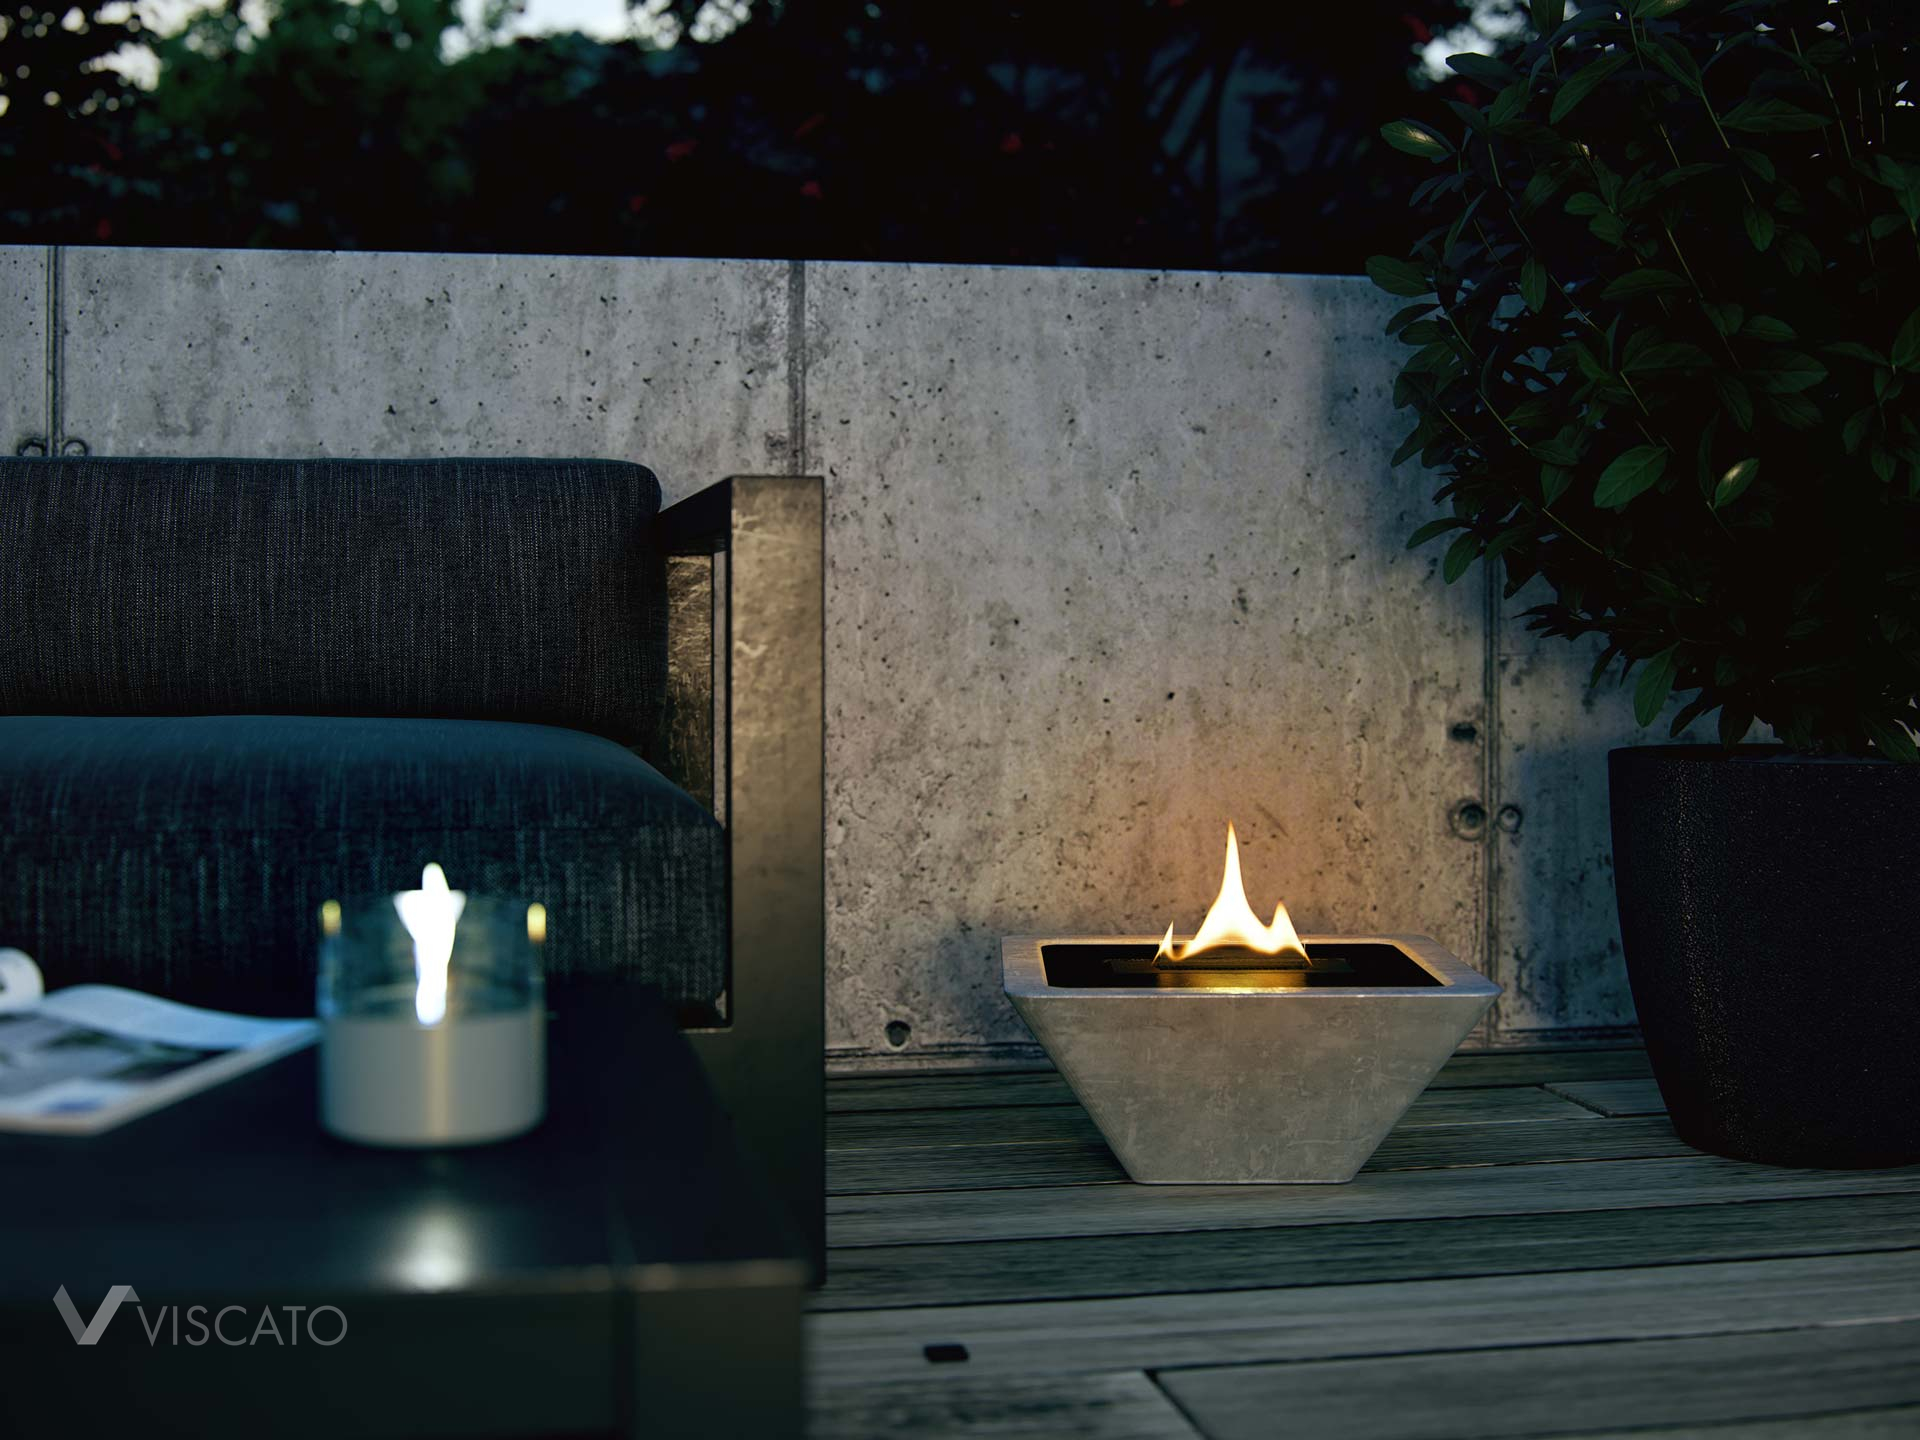 eco-friendly terrace burner, Viscato 3D